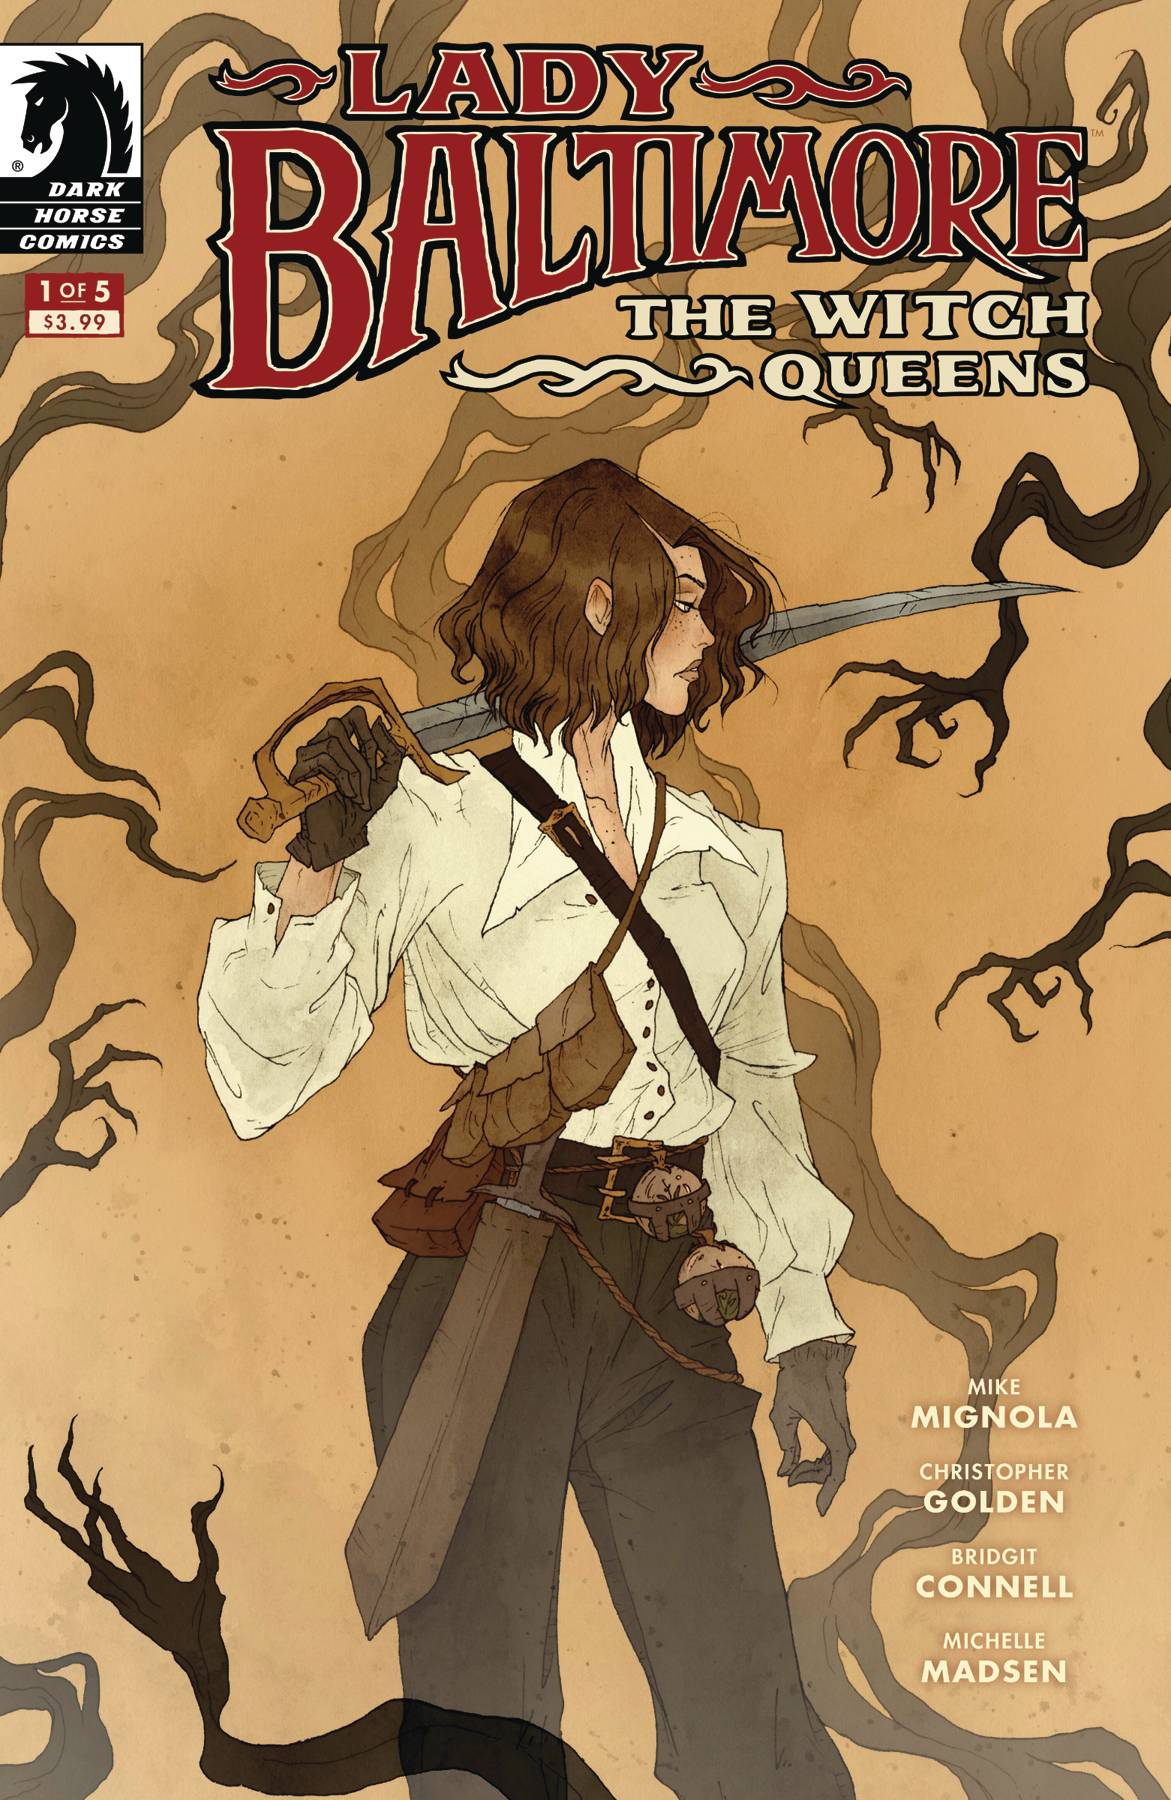 LADY BALTIMORE WITCH QUEENS #1 (OF 5) (RES). - Linebreakers